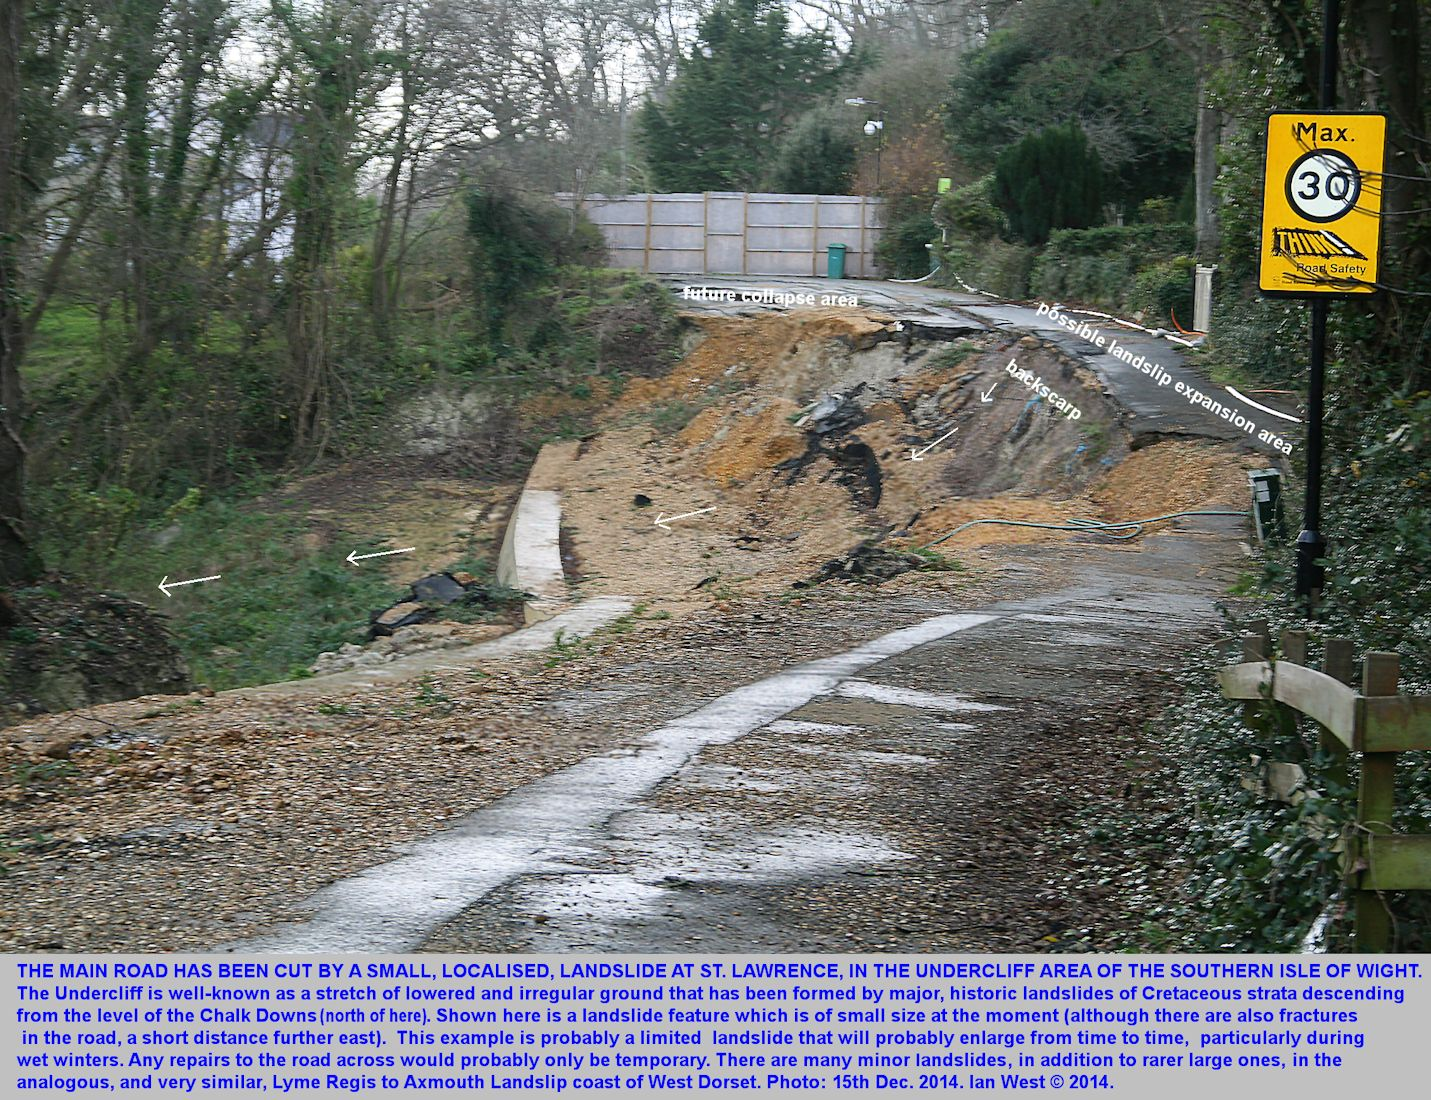 A small area of collapse of the A3055 coast road at St. Lawrence, within the Undercliff, on the southern part of the Isle of Wight, as seen on the 14th December 2014